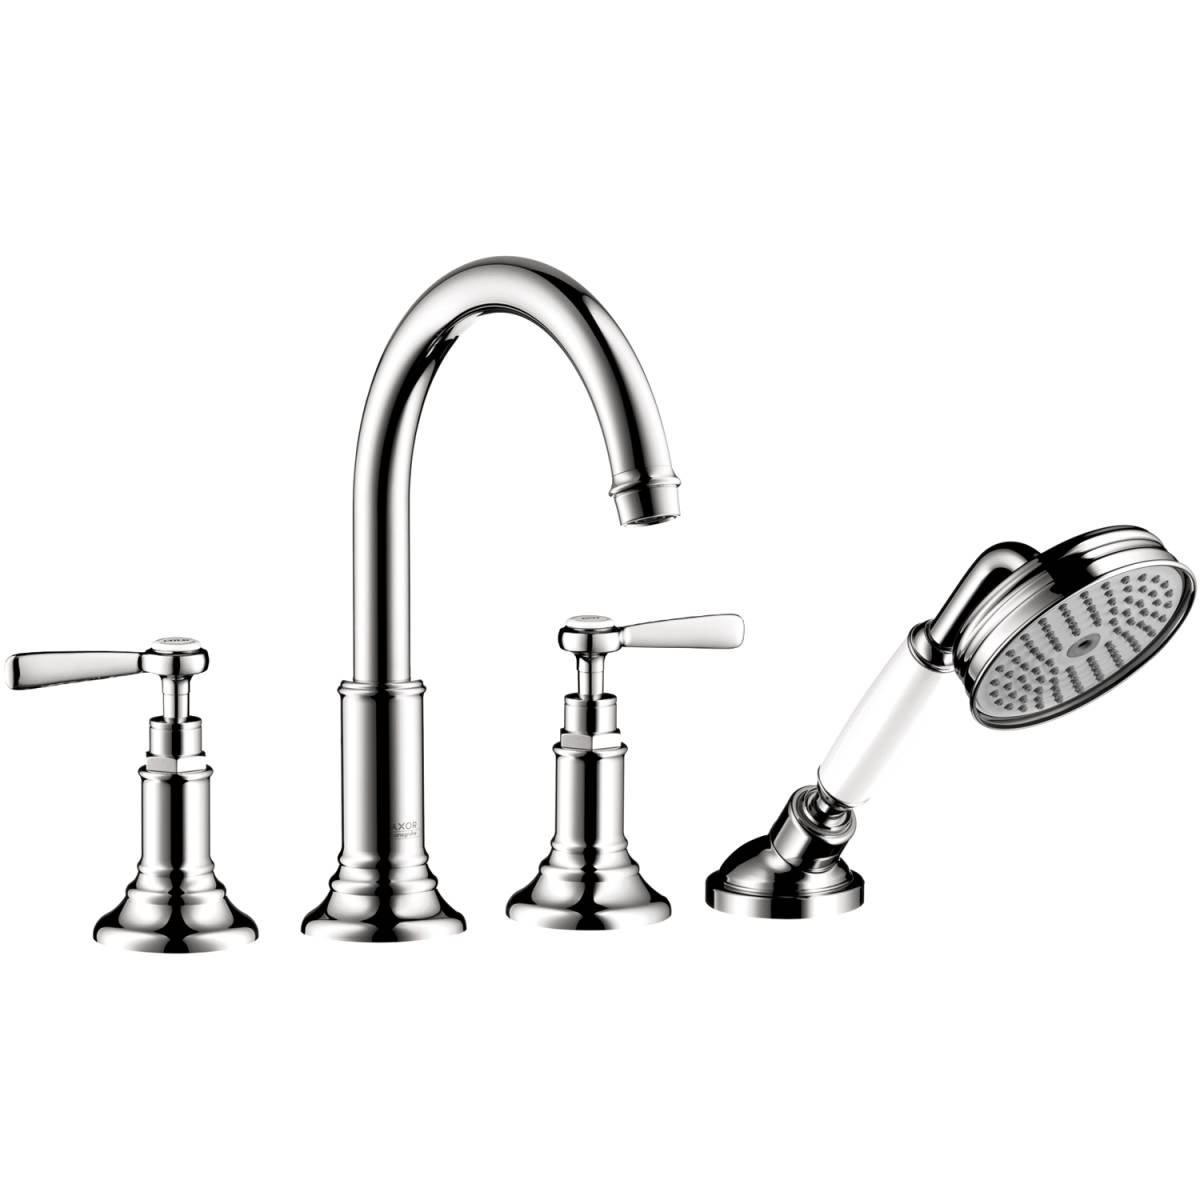 4-hole rim mounted bath mixer with lever handles, Chrome, 16555001